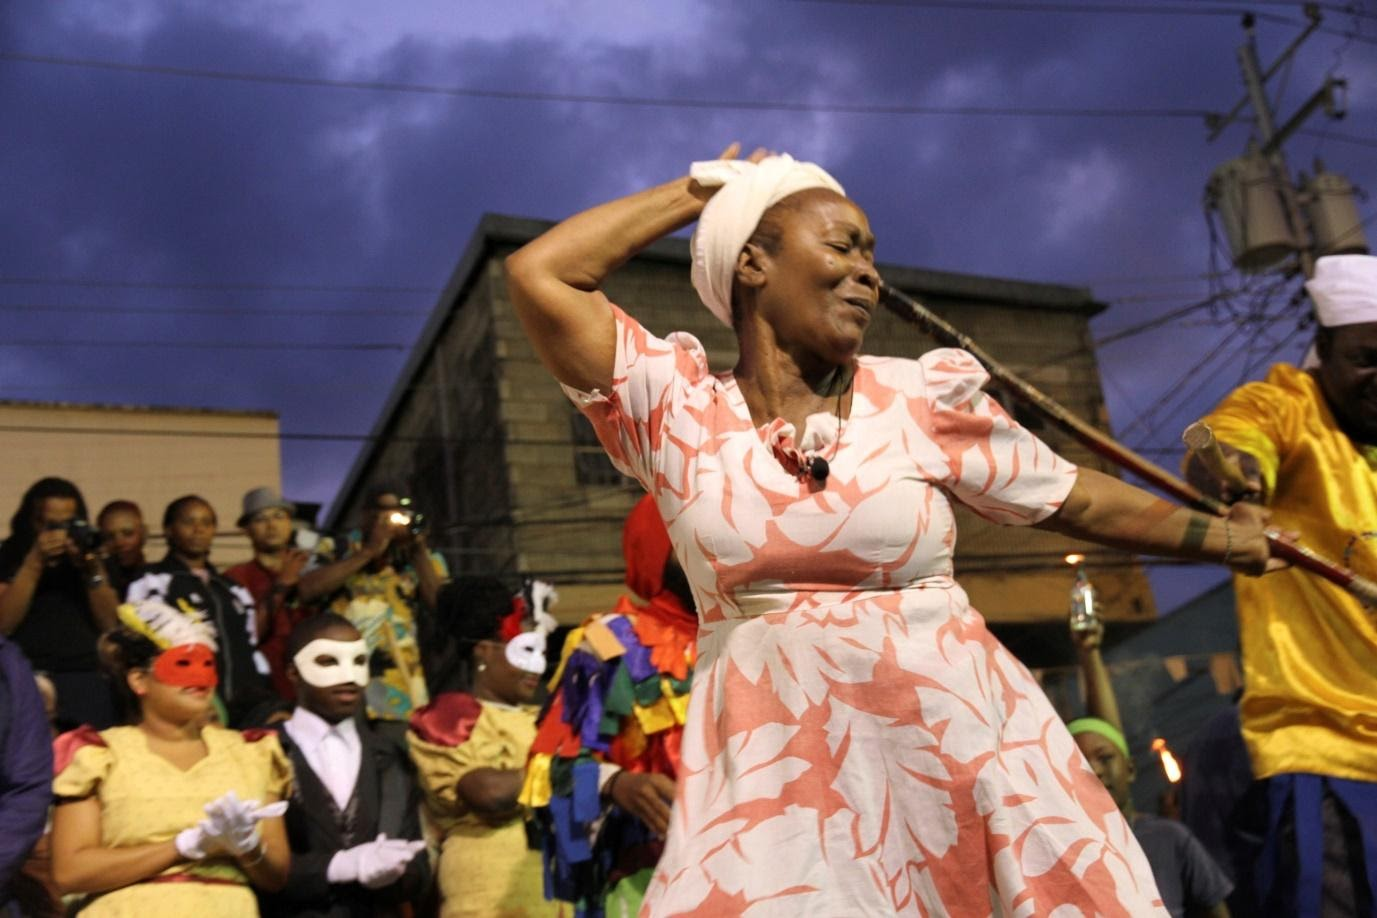 Eintou and members of the cast perform Kambule